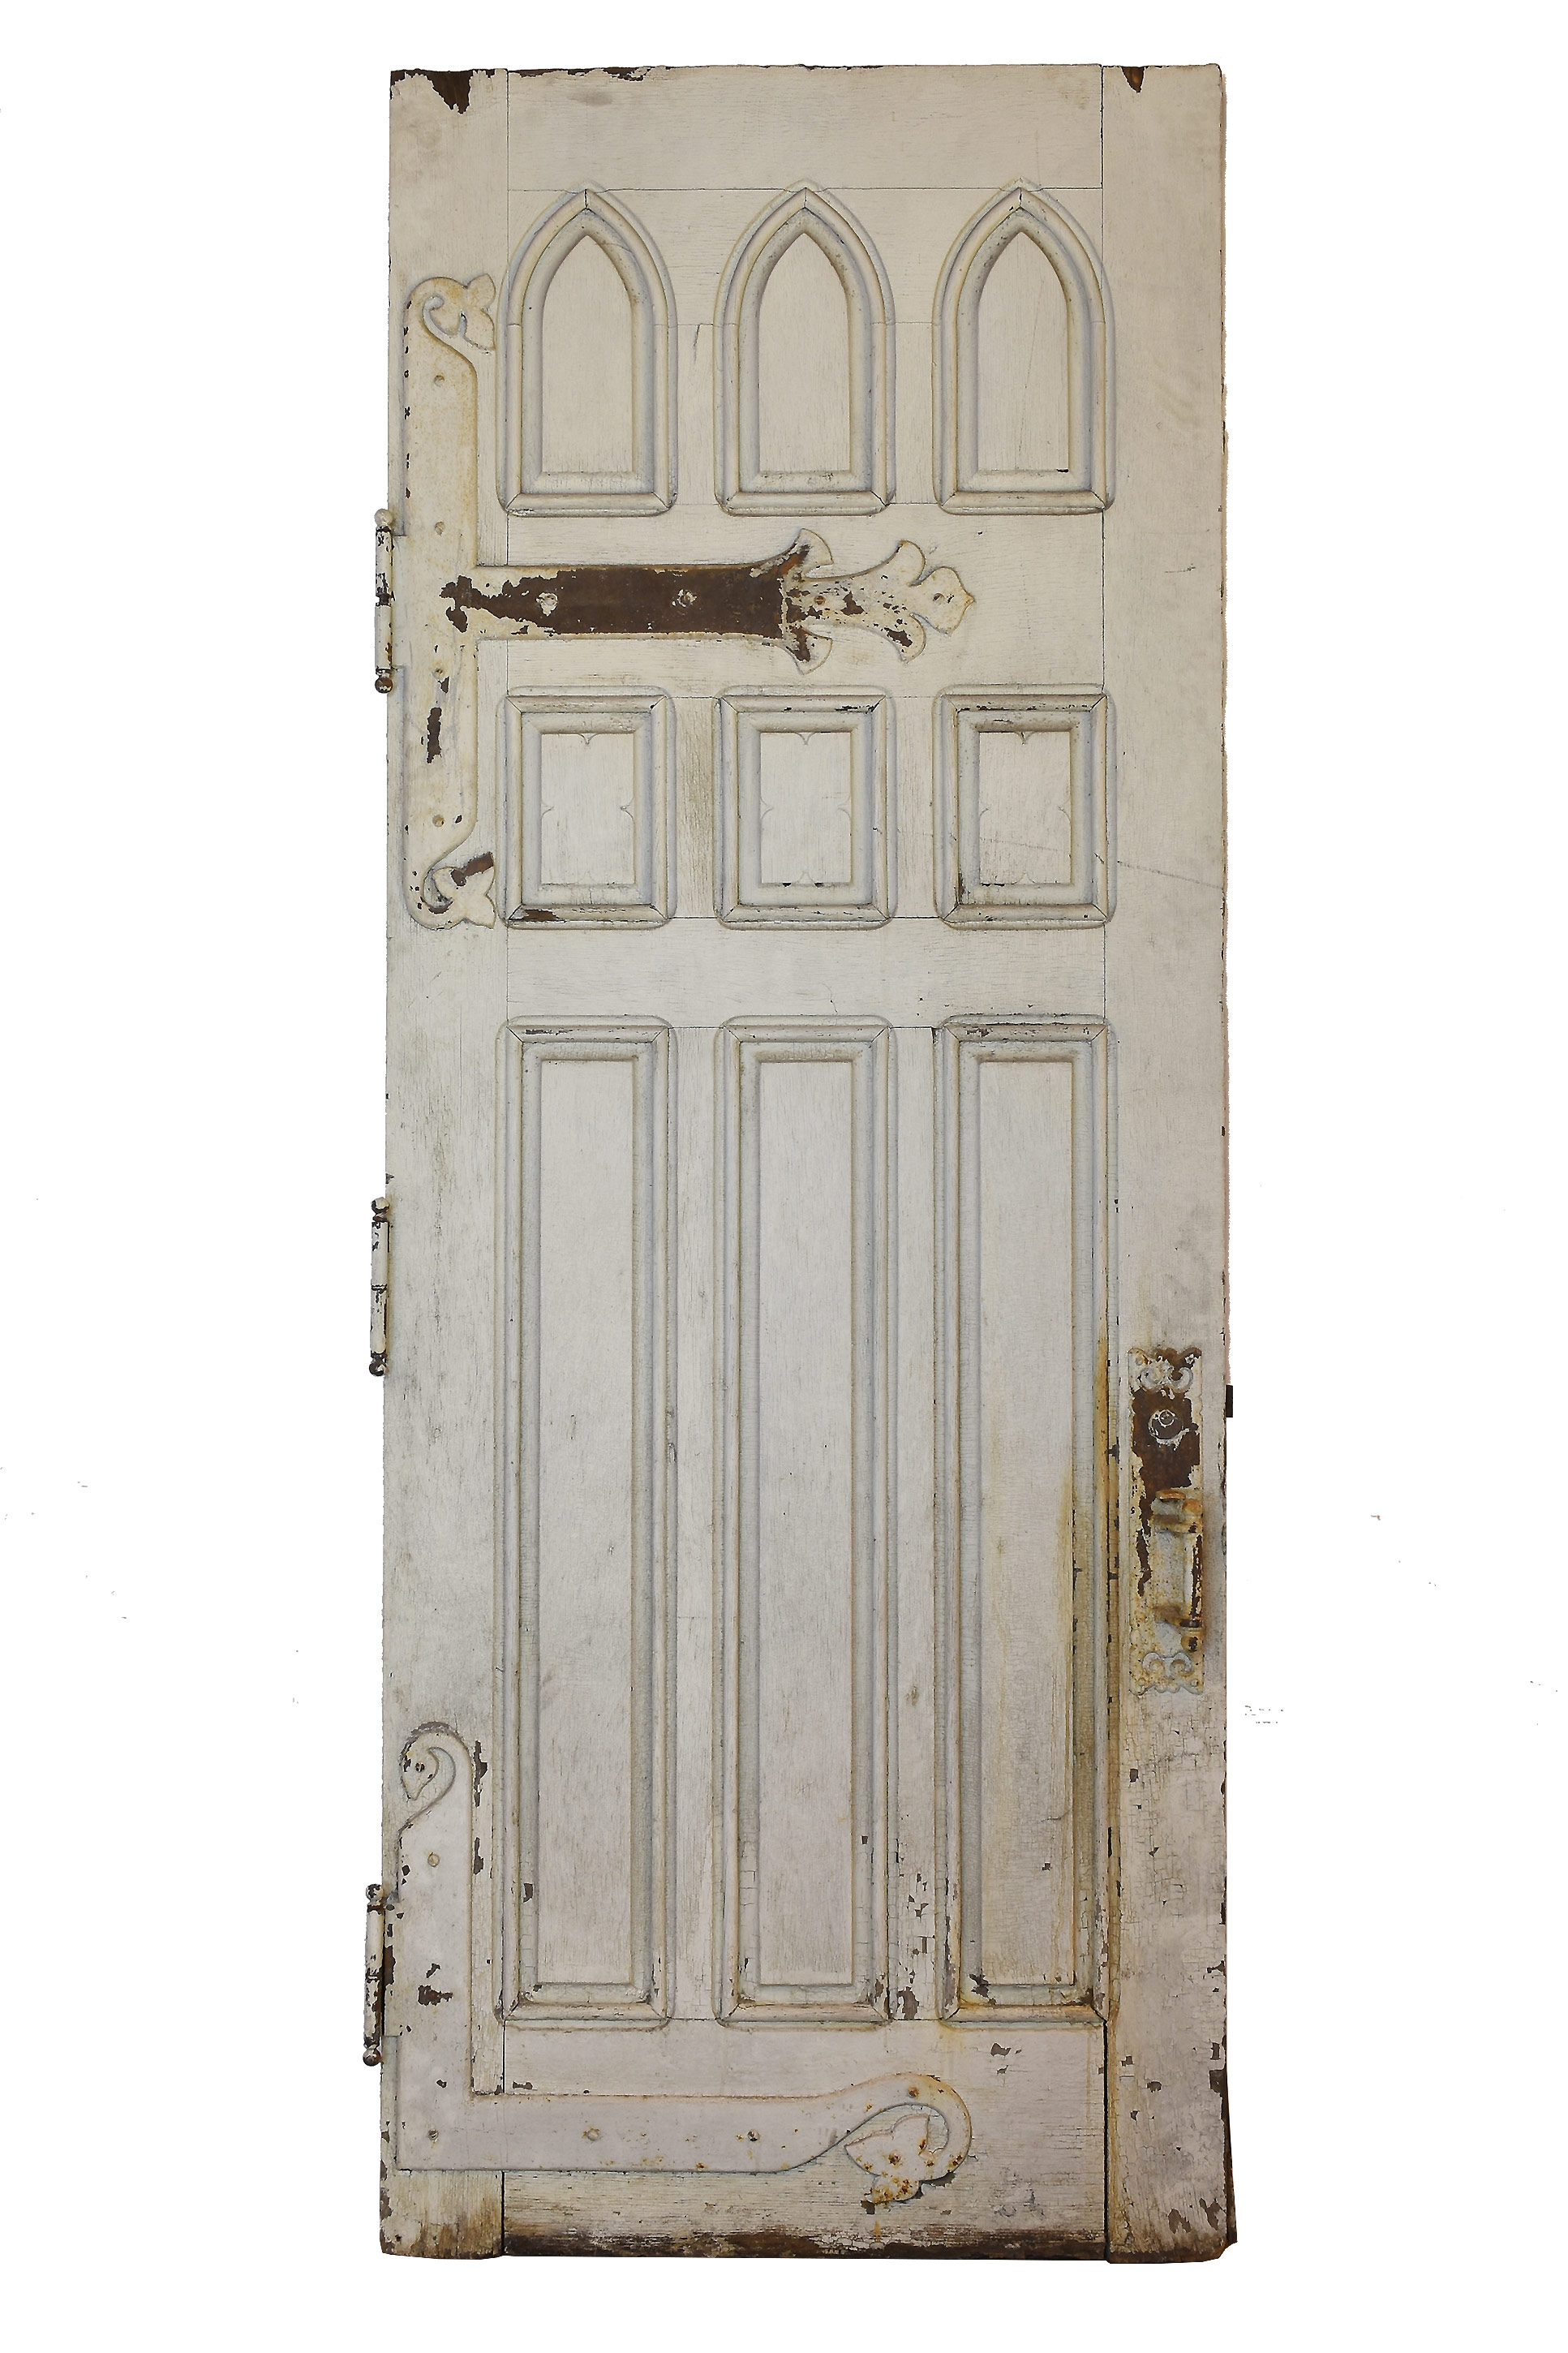 oversized gothic door with strap hinges